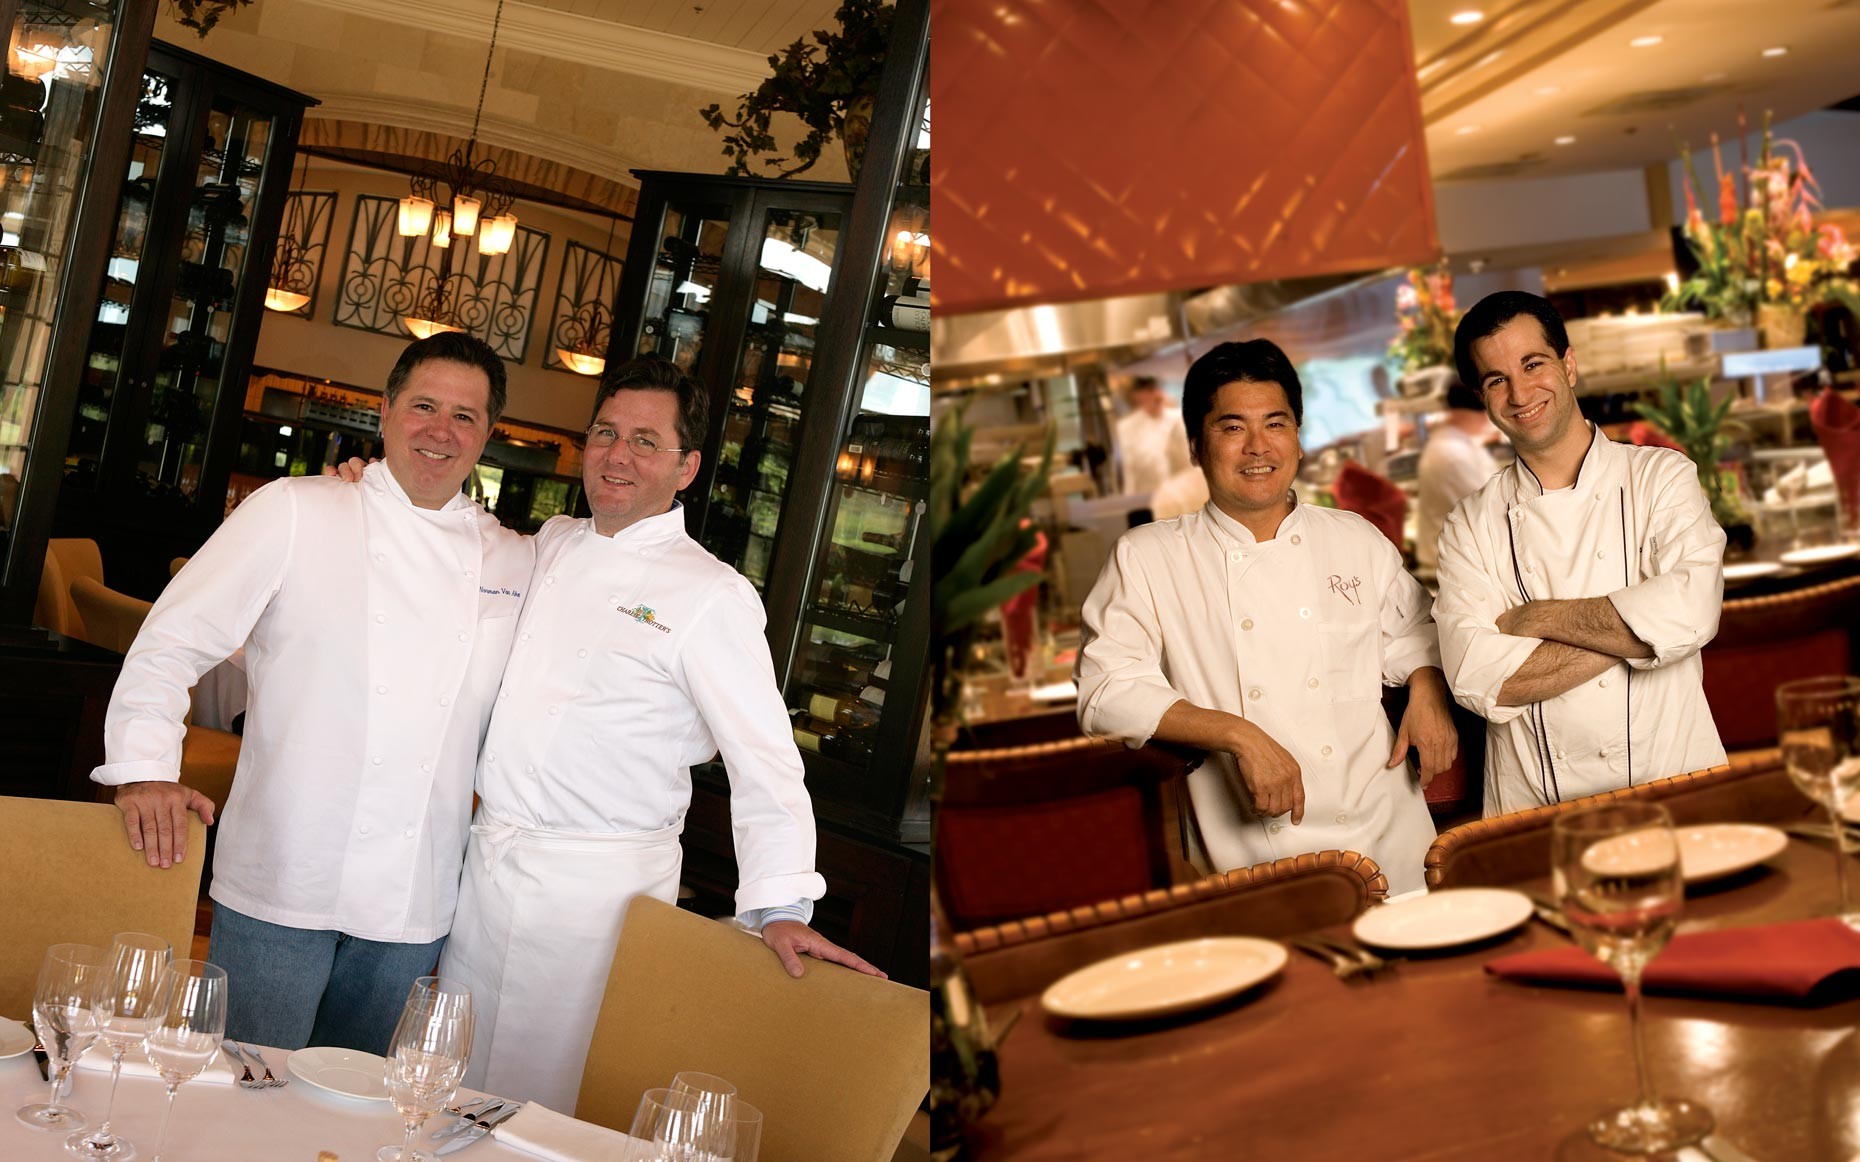 Chefs & Restaurant Photography | Photo of Chefs